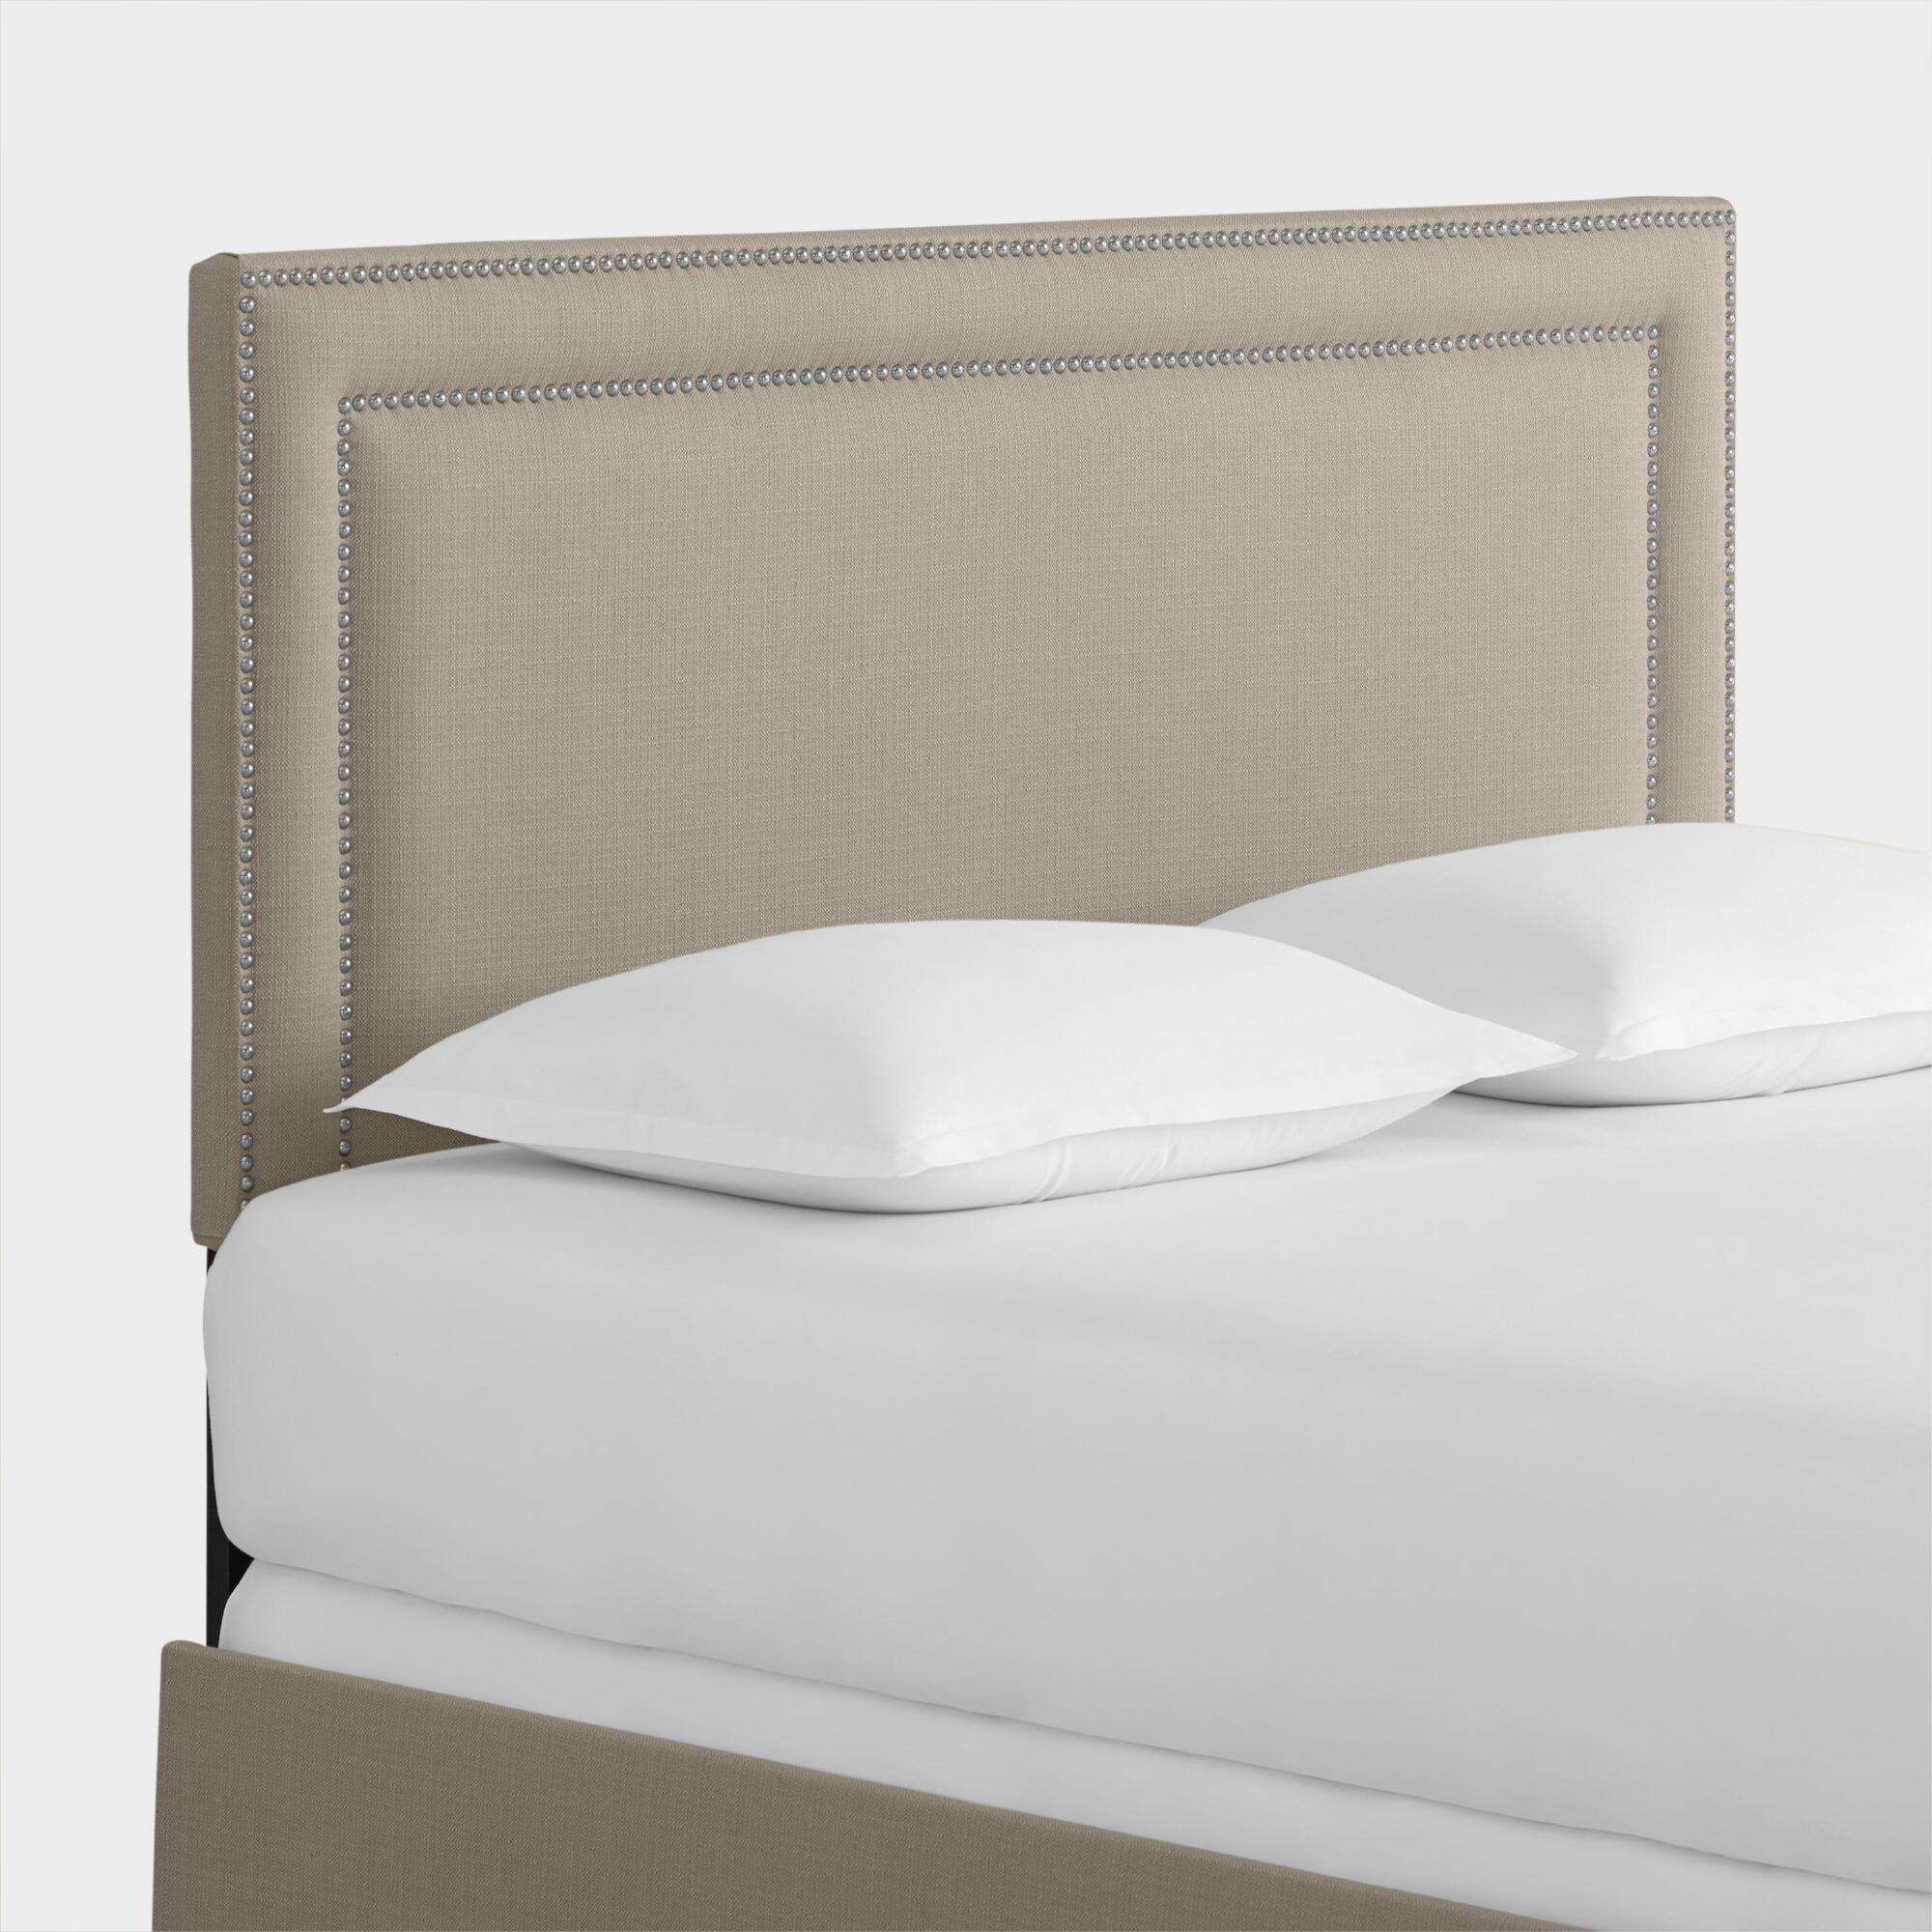 Textured Woven Treyton Upholstered Bed: White - Fabric - Twin Bed by World Market Twin/White